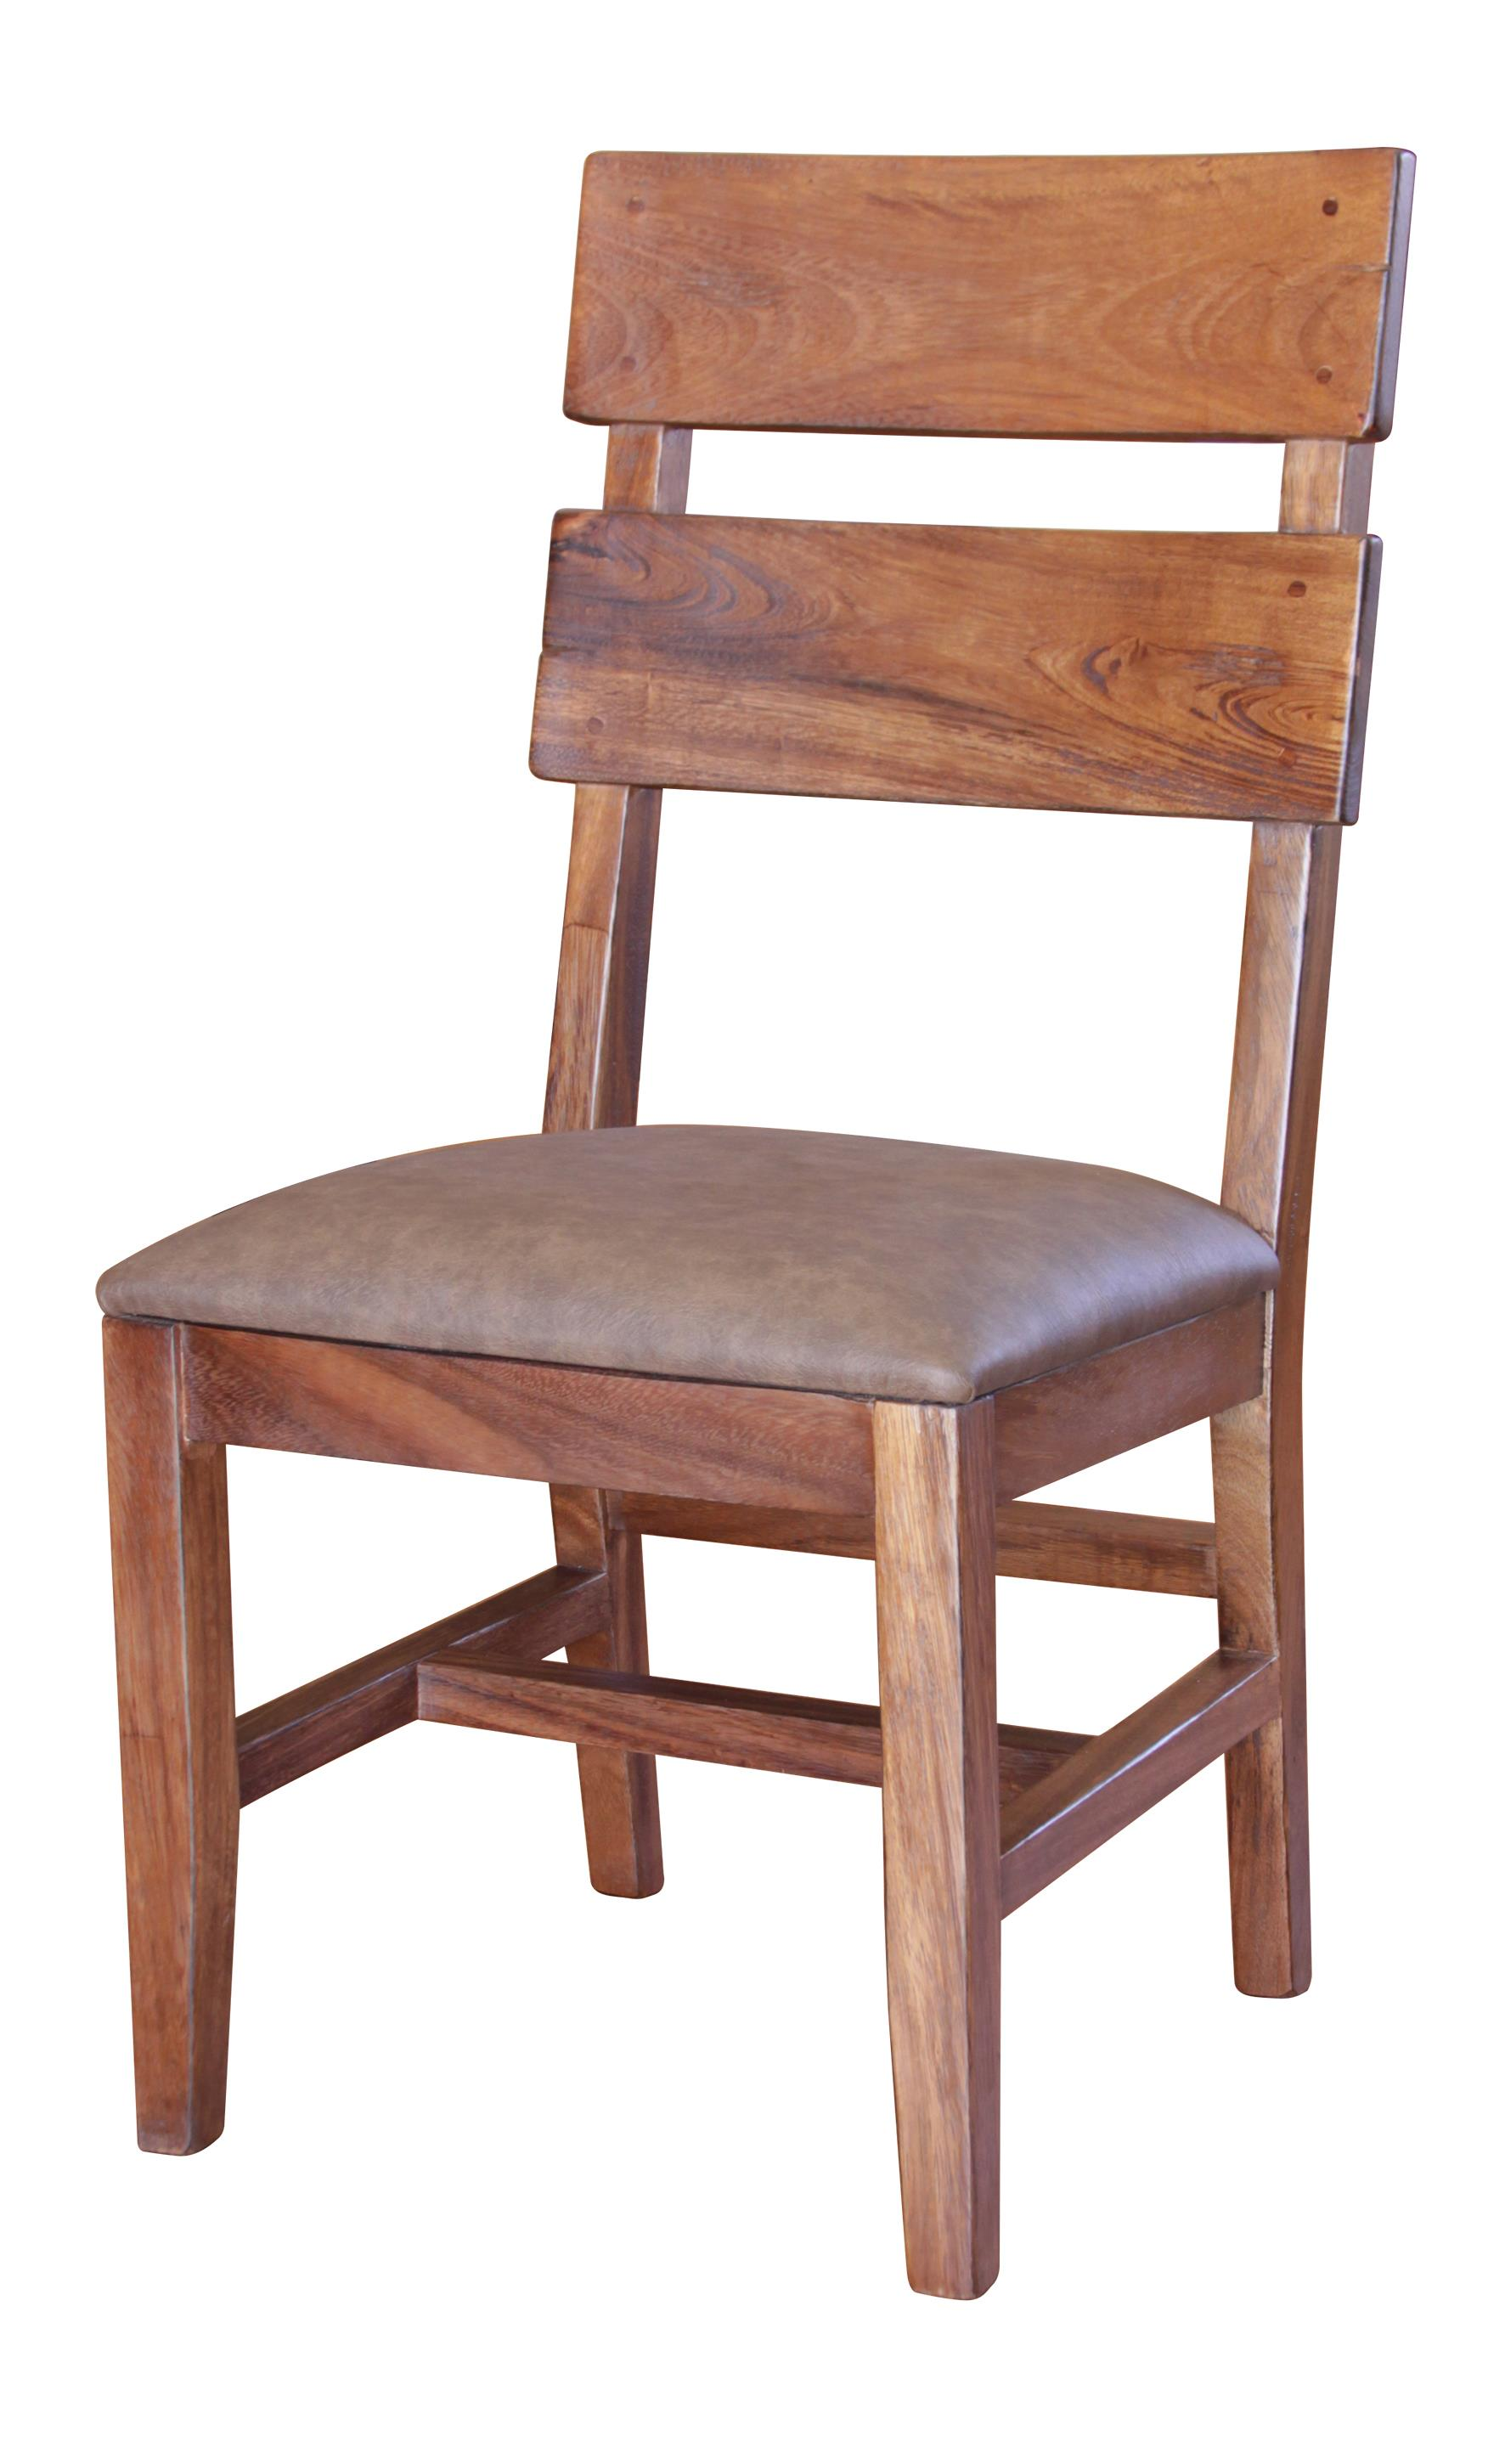 Chair with Bonded Leather Seat